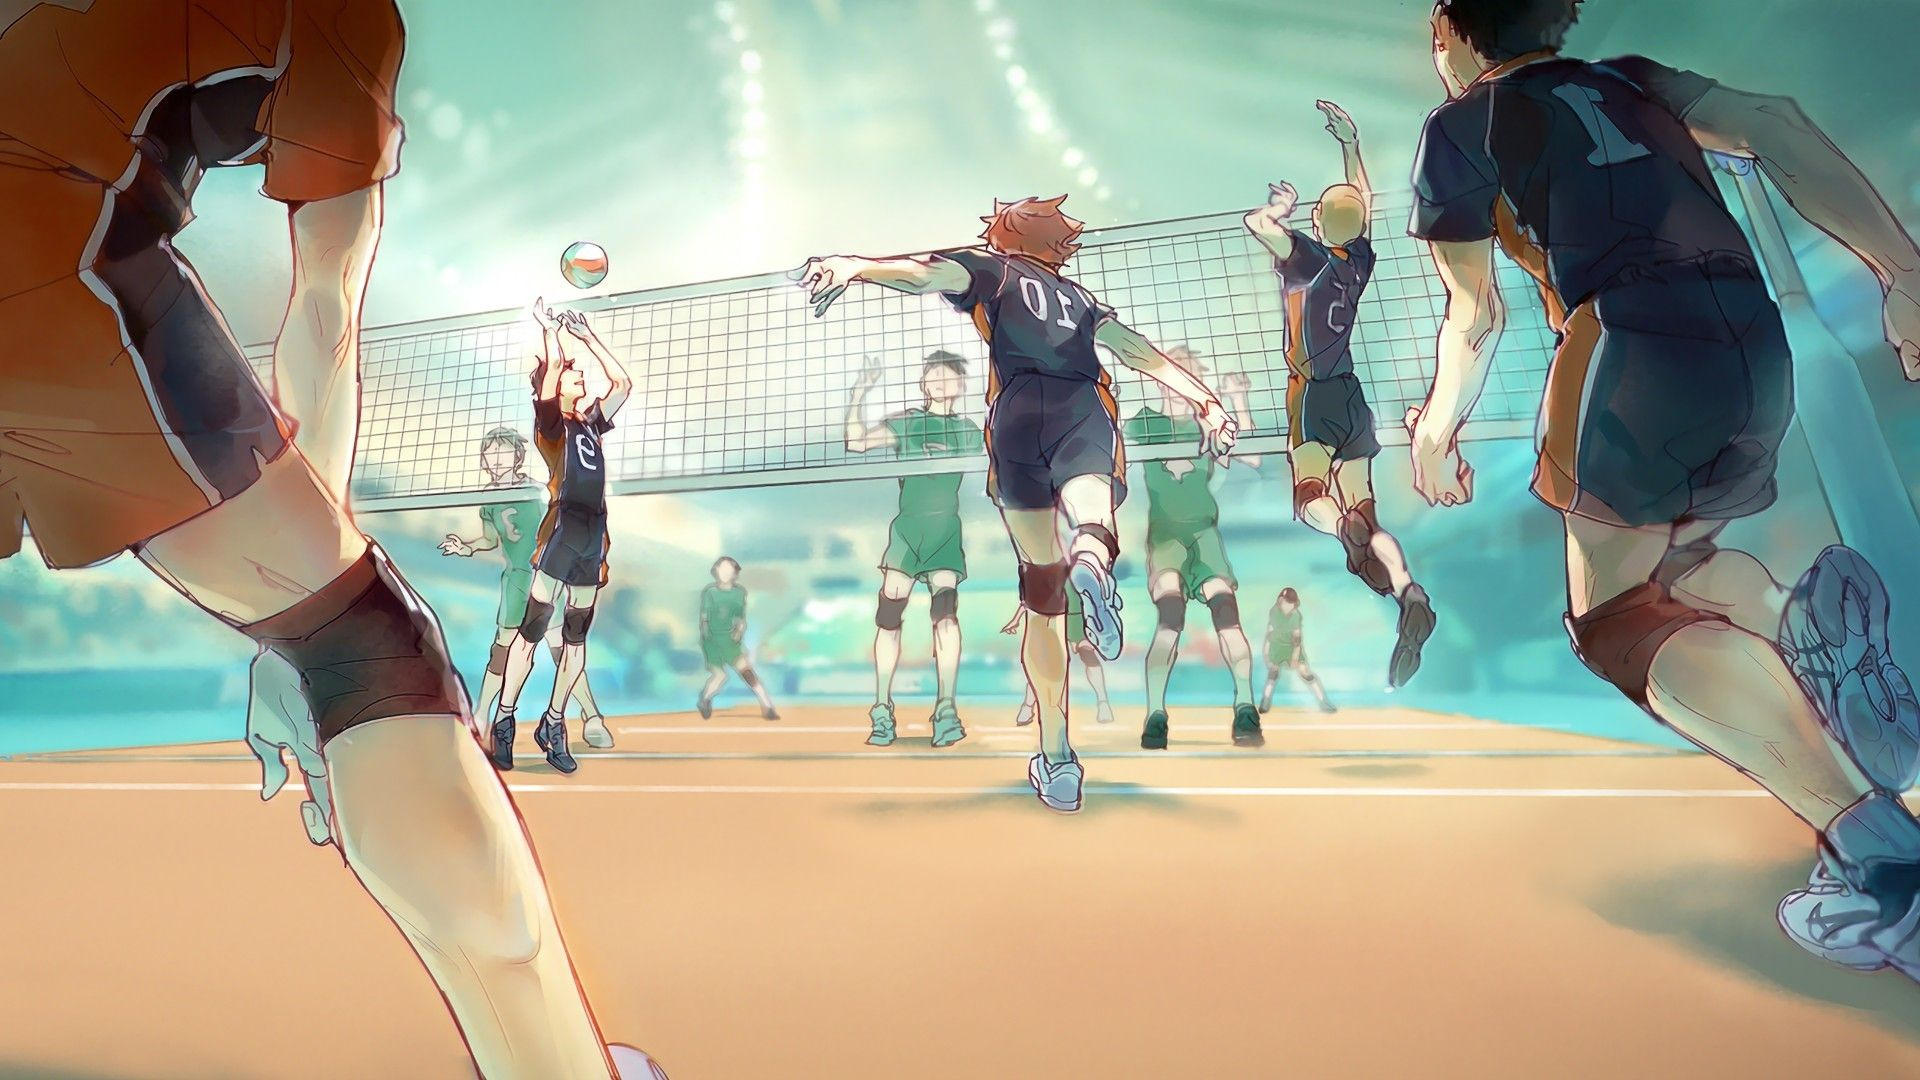 1920x1080 1920x1080 Haikyuu Wallpaper 1920x1080 For Macbook Haikyuu Wallpaper Haikyuu Anime Wallpaper Pc Anime